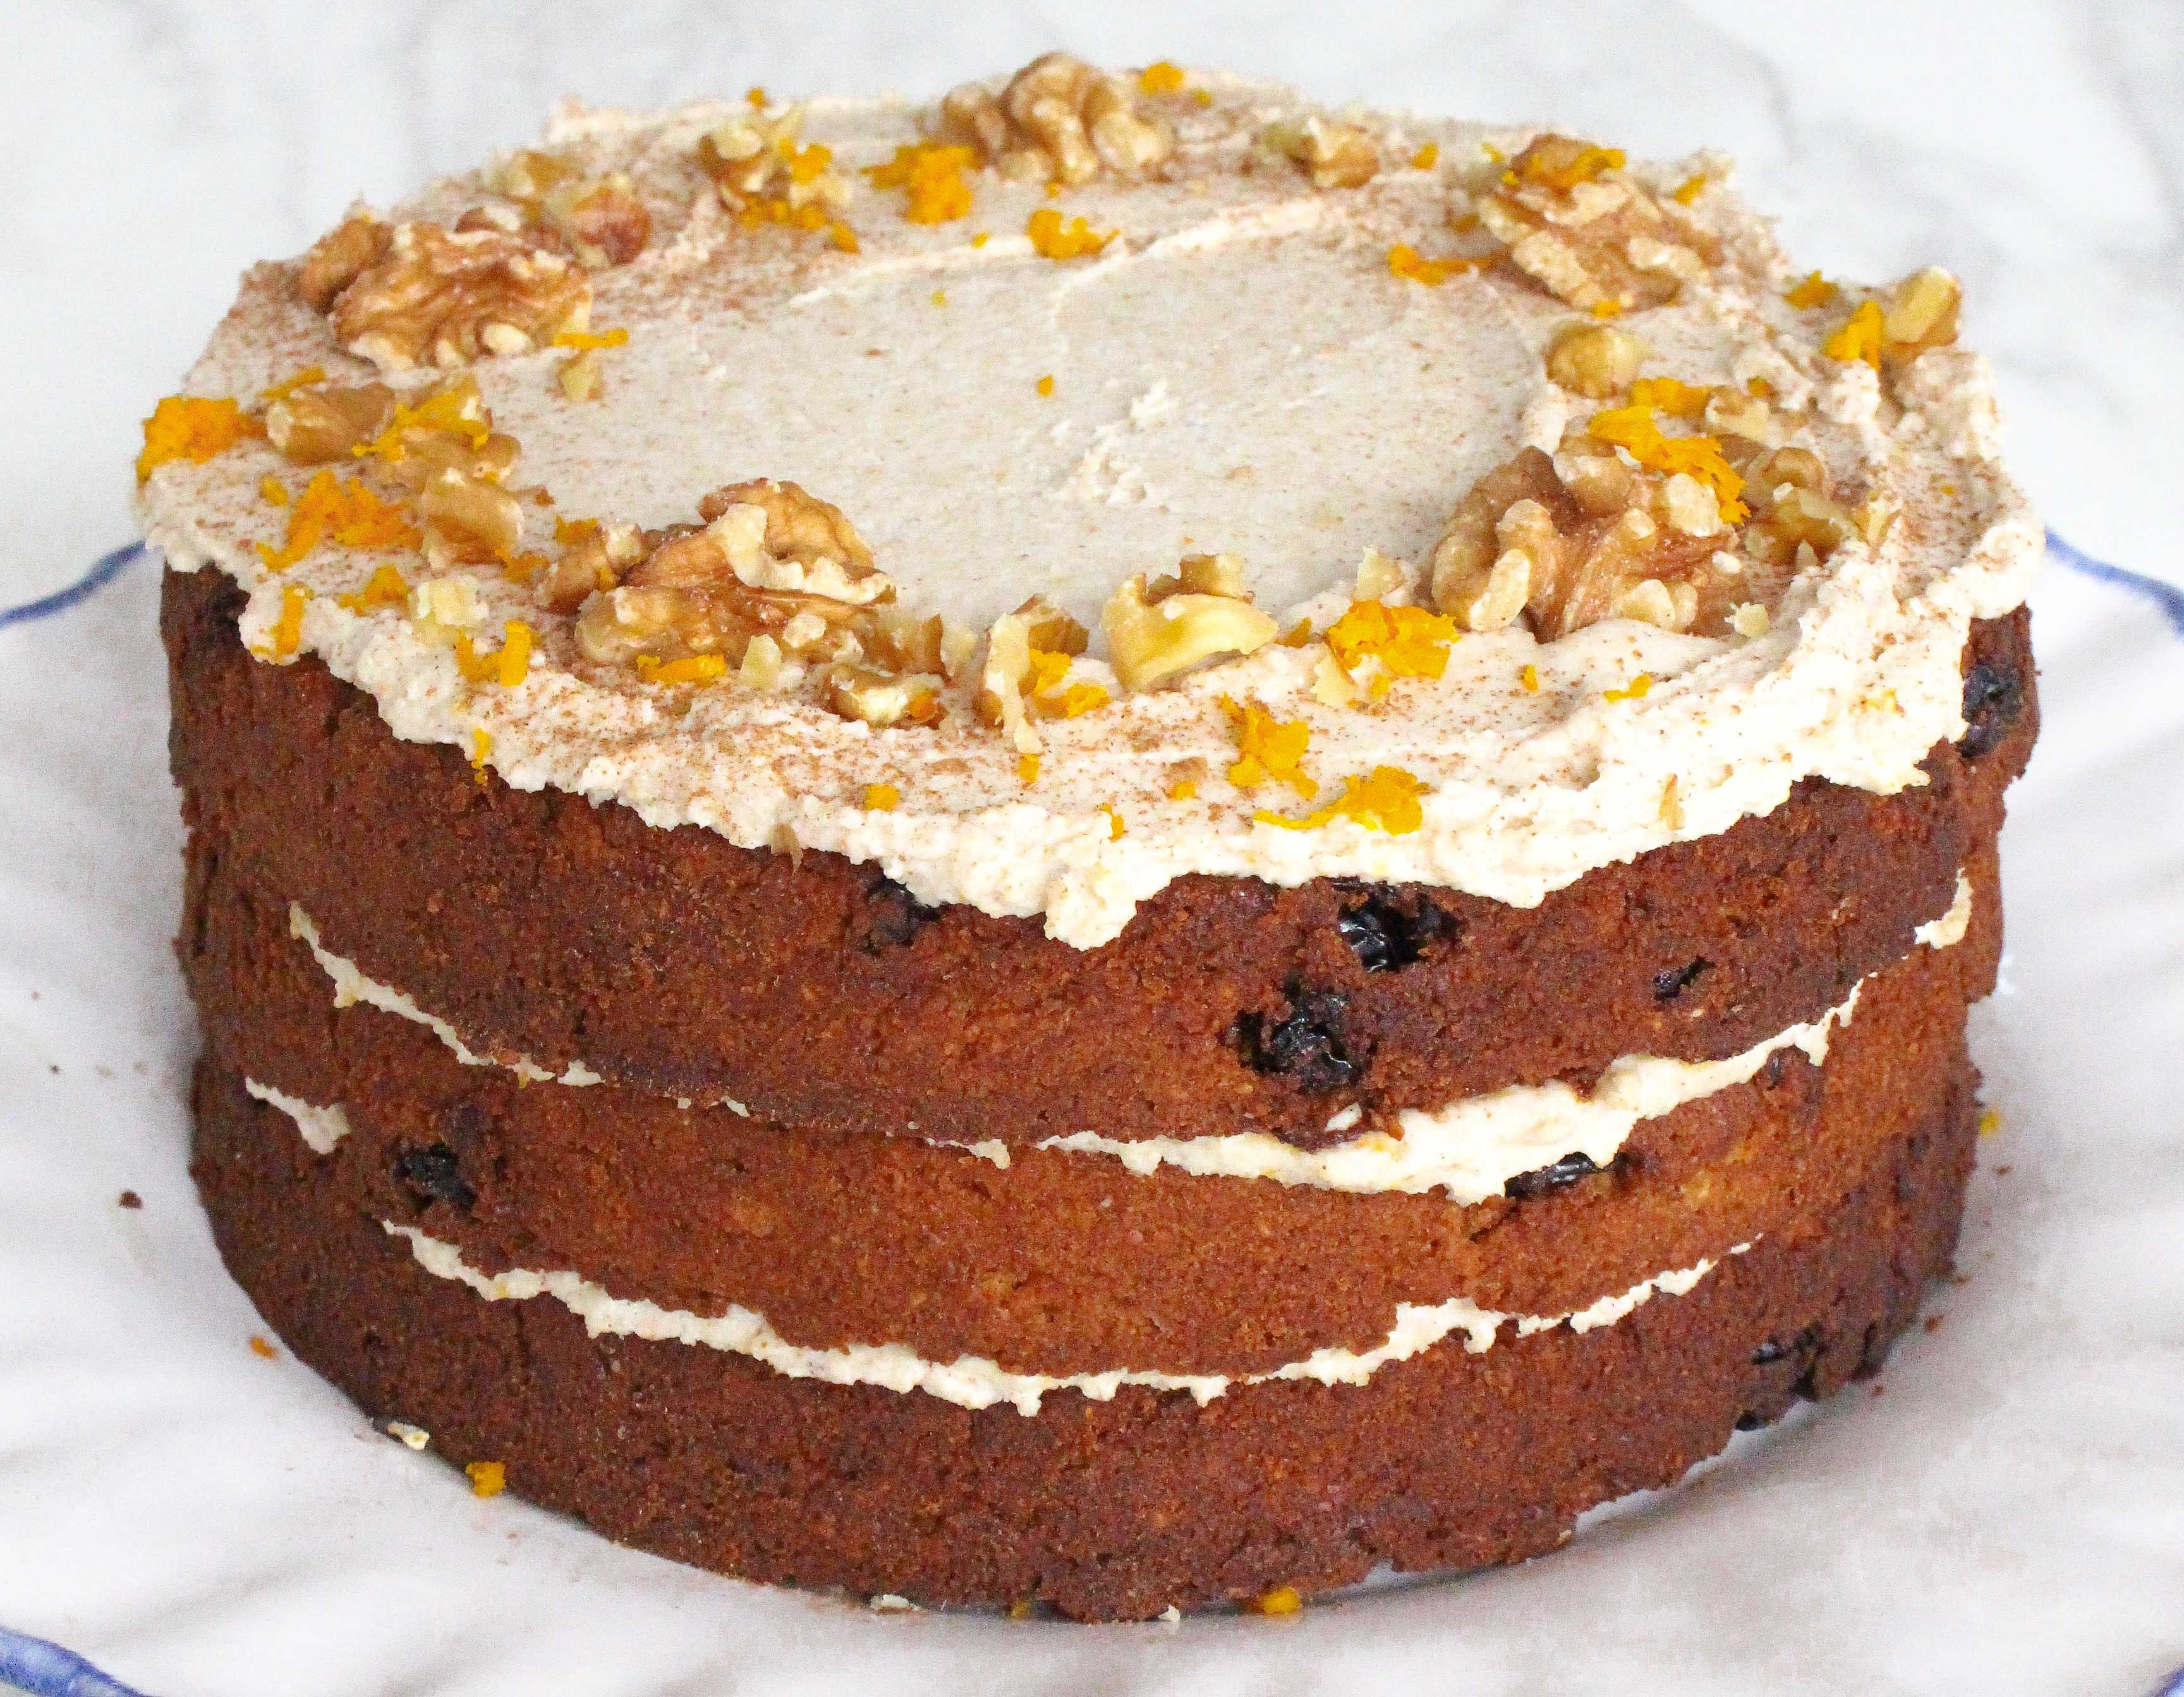 Gluten free carrot cake recipe with cashew frosting